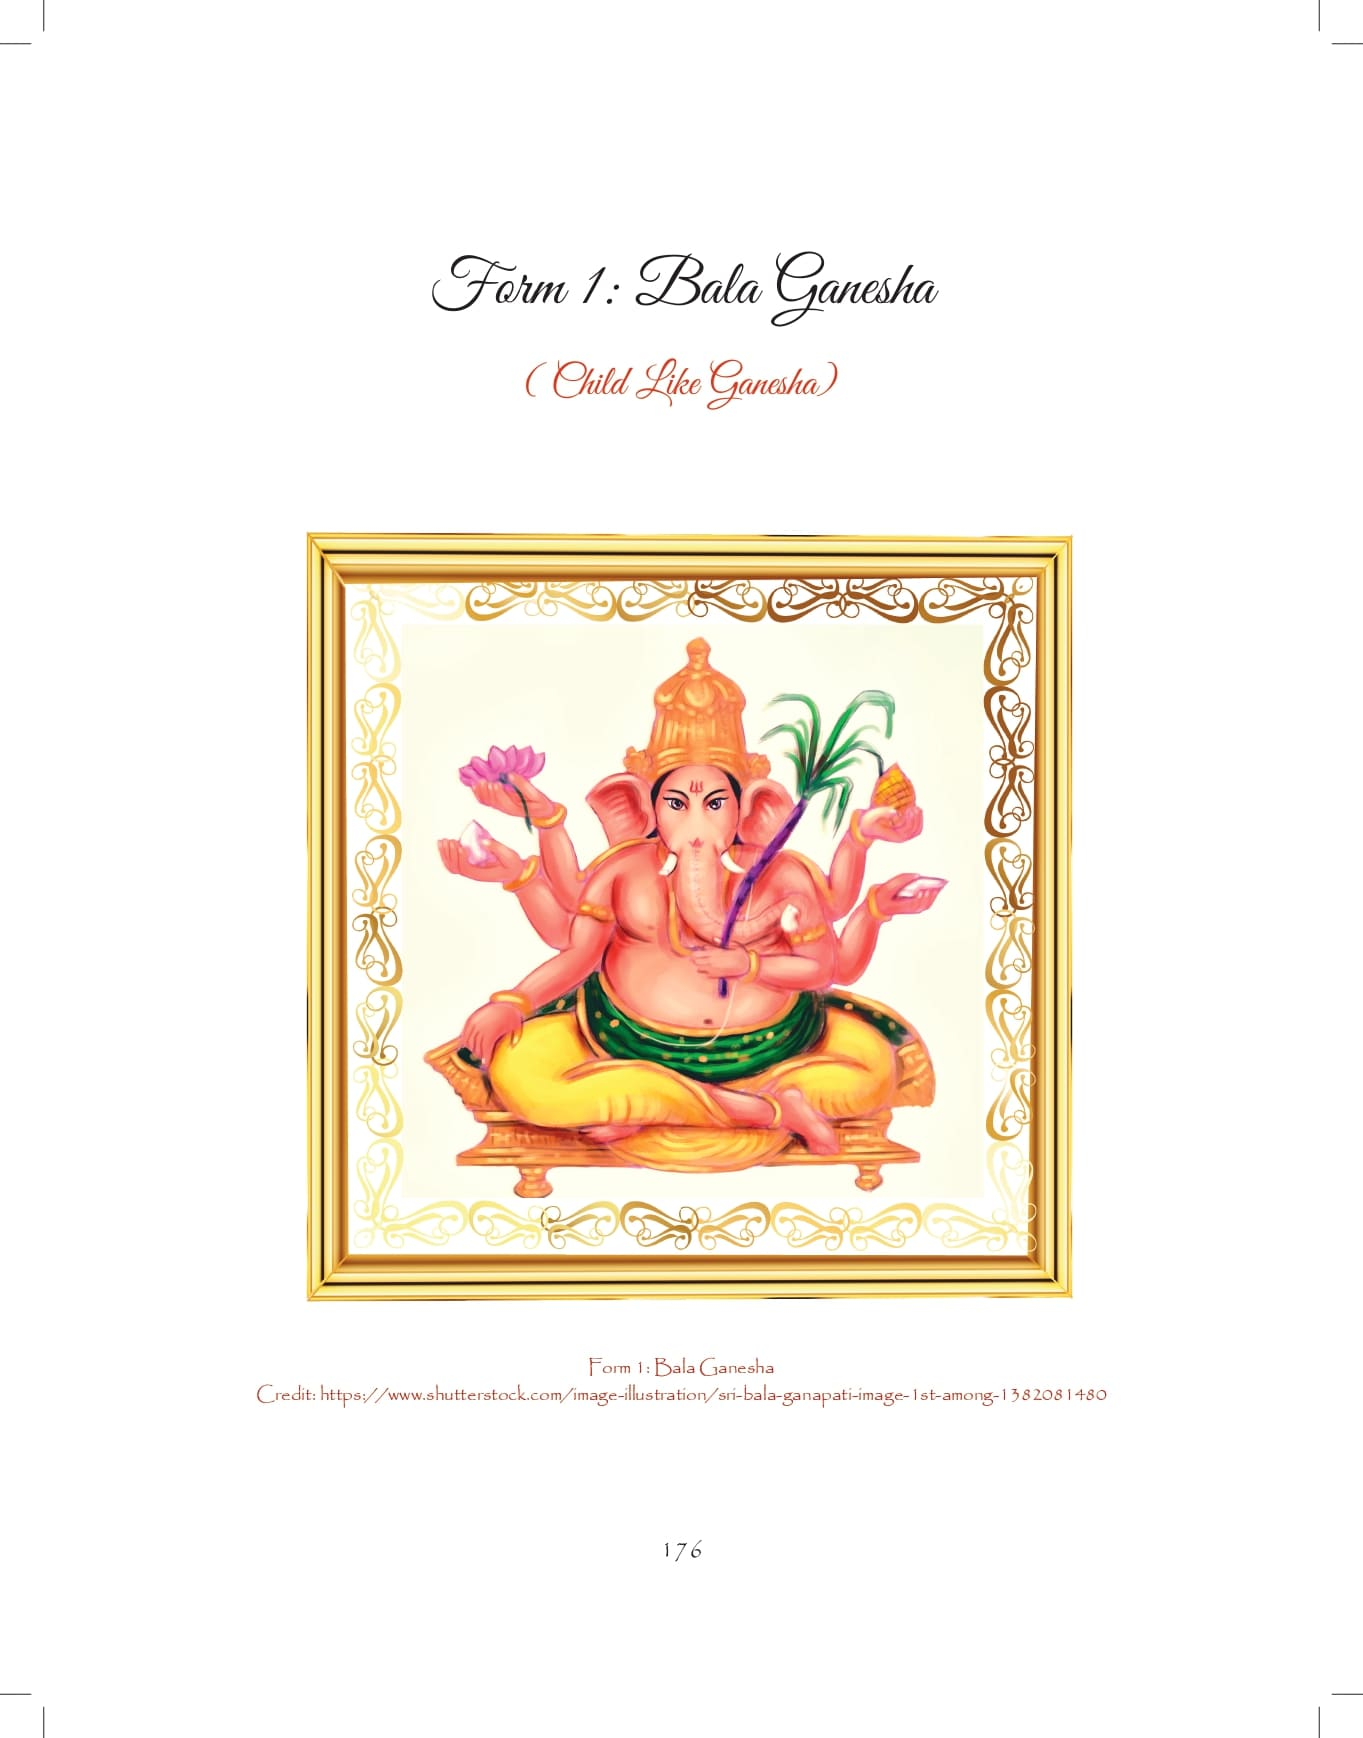 Ganesh-print_pages-to-jpg-0176.jpg